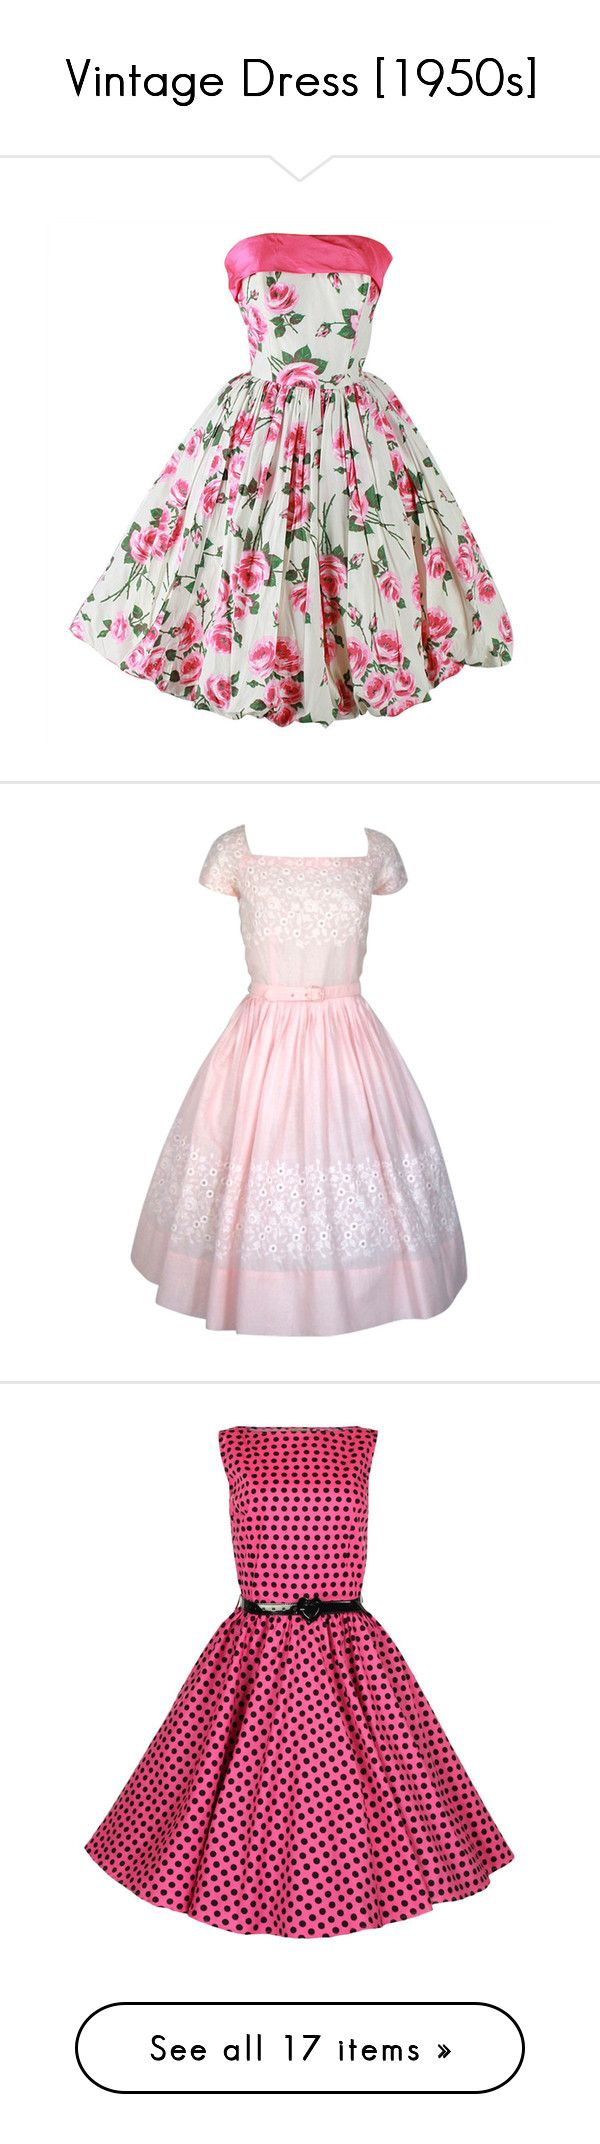 """""""Vintage Dress [1950s]"""" by years-of-summer ❤ liked on Polyvore featuring dresses, vestidos, short dresses, pink, short white dresses, vintage white dress, vintage pink dress, vintage mini dress, short pink dress and vintage dresses"""